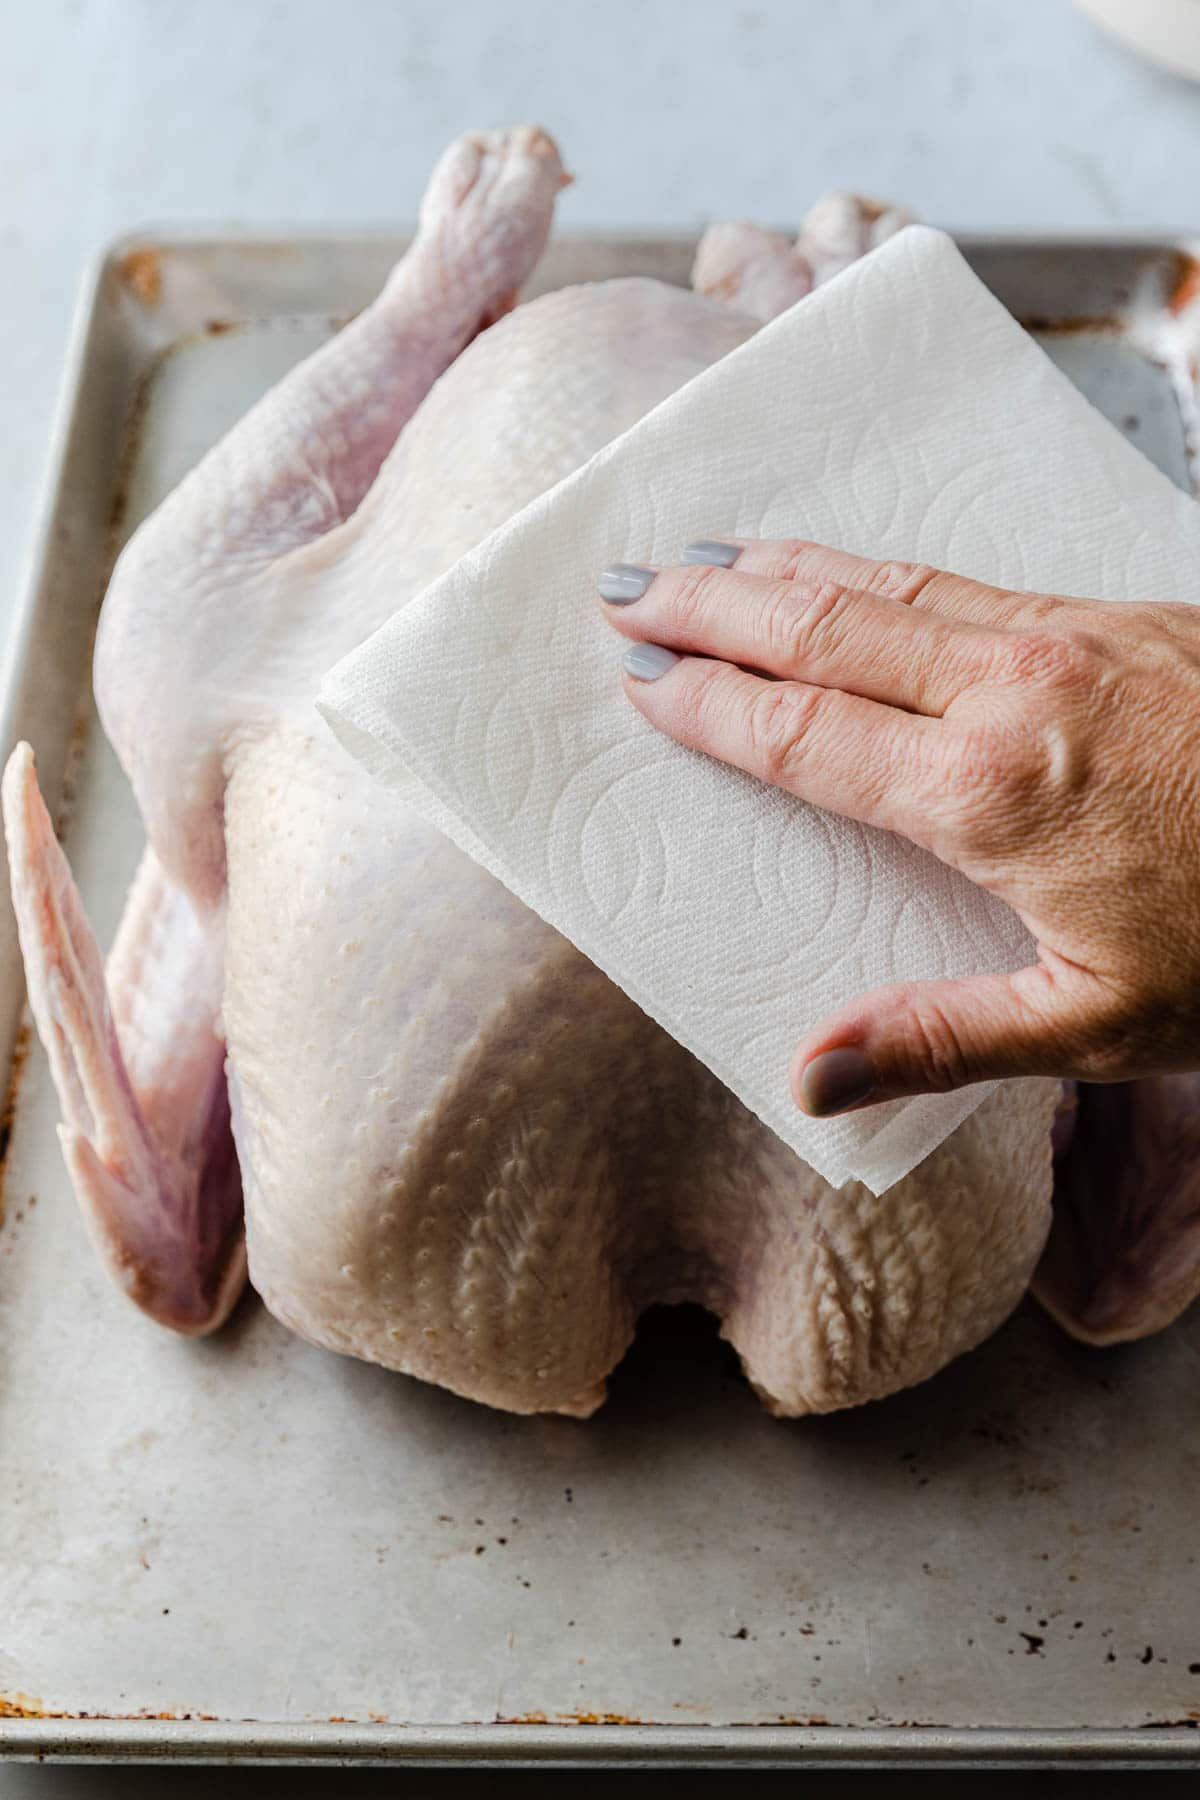 raw turkey being wiped with a paper towel